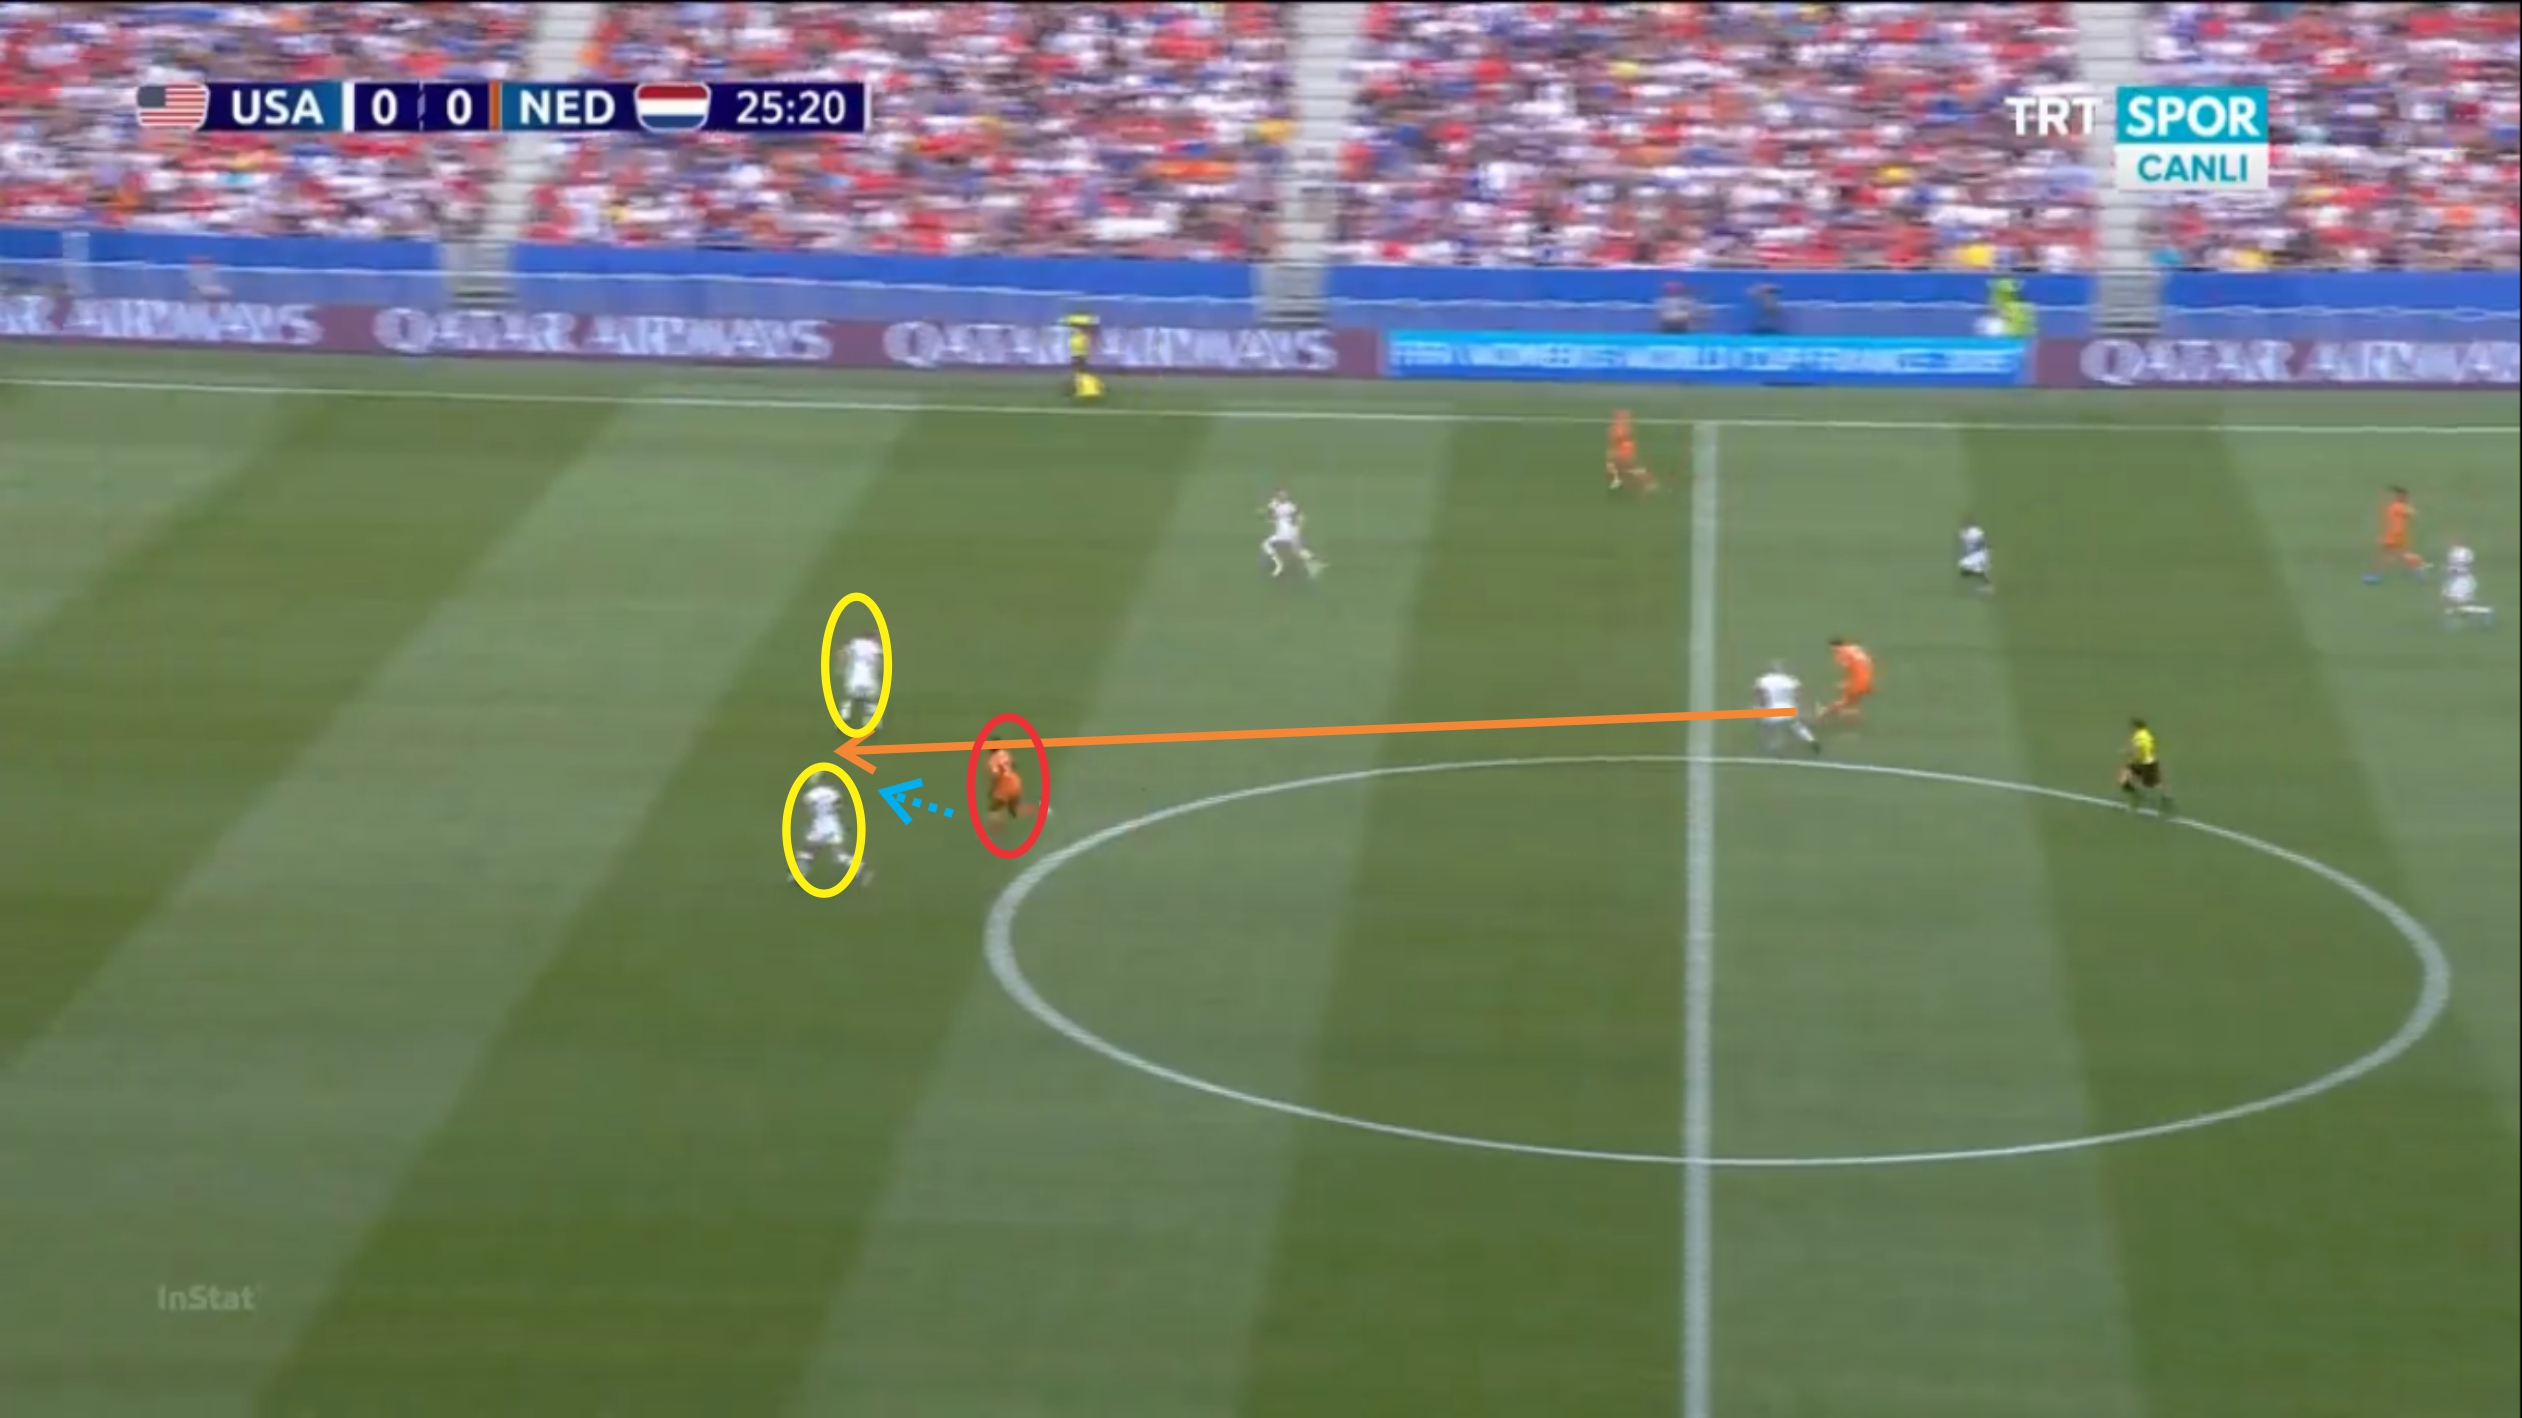 FIFA Women's World Cup 2019: USA vs Netherlands - tactical analysis